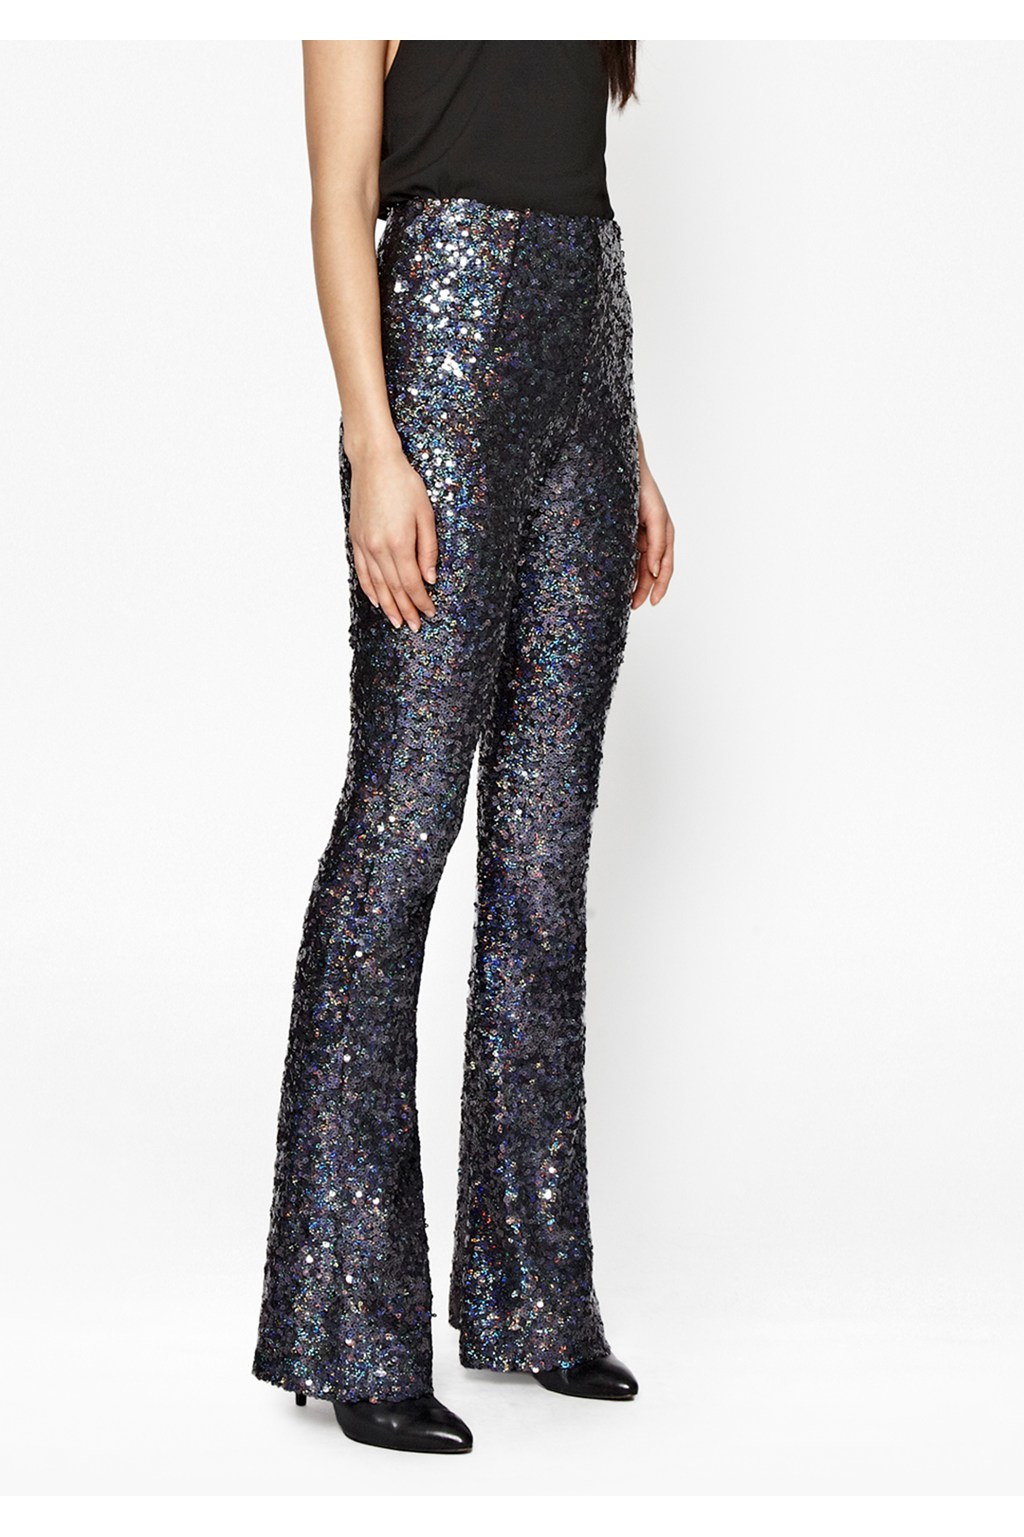 French Connection Synthetic Lunar Sparkle Sequin Flares In